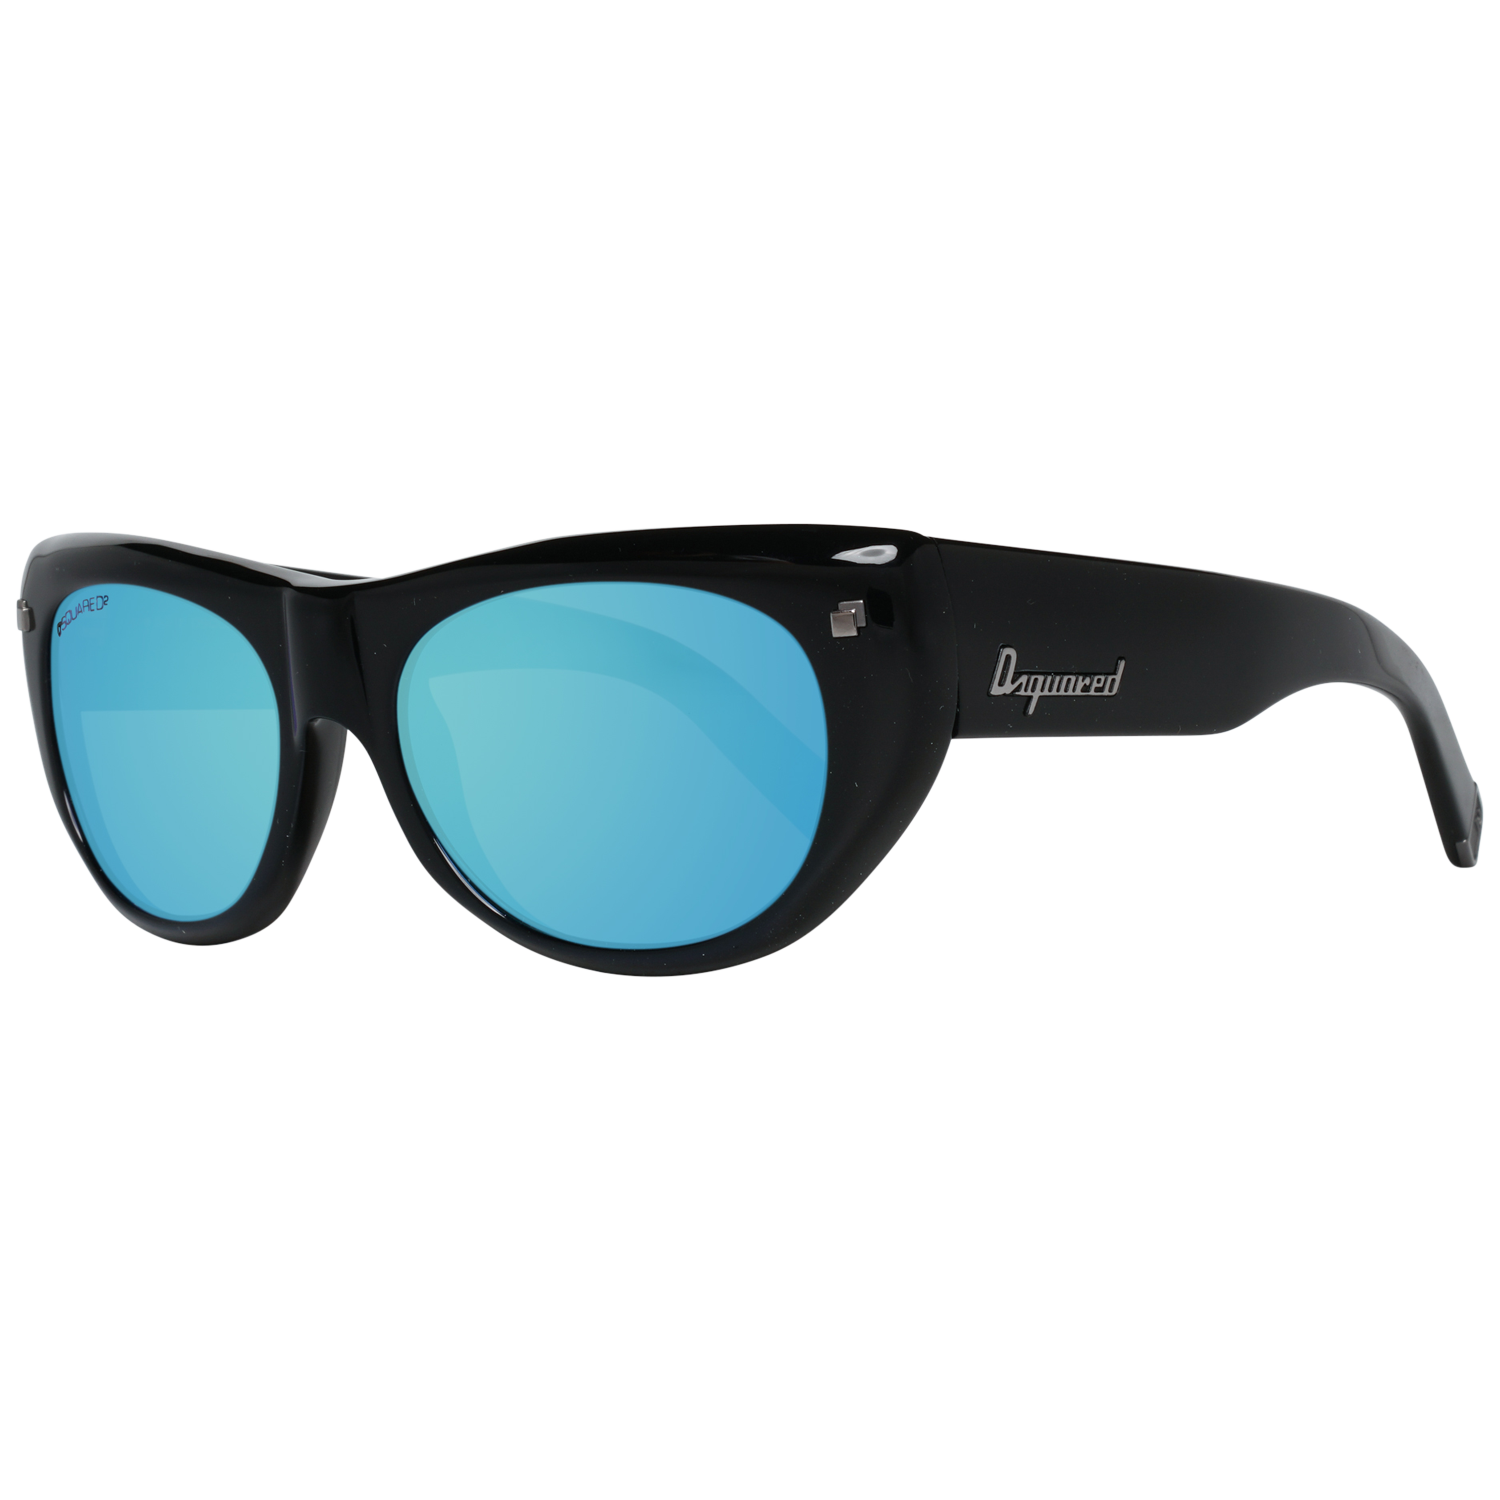 Dsquared2 Sunglasses DQ0107 01X 55 Black